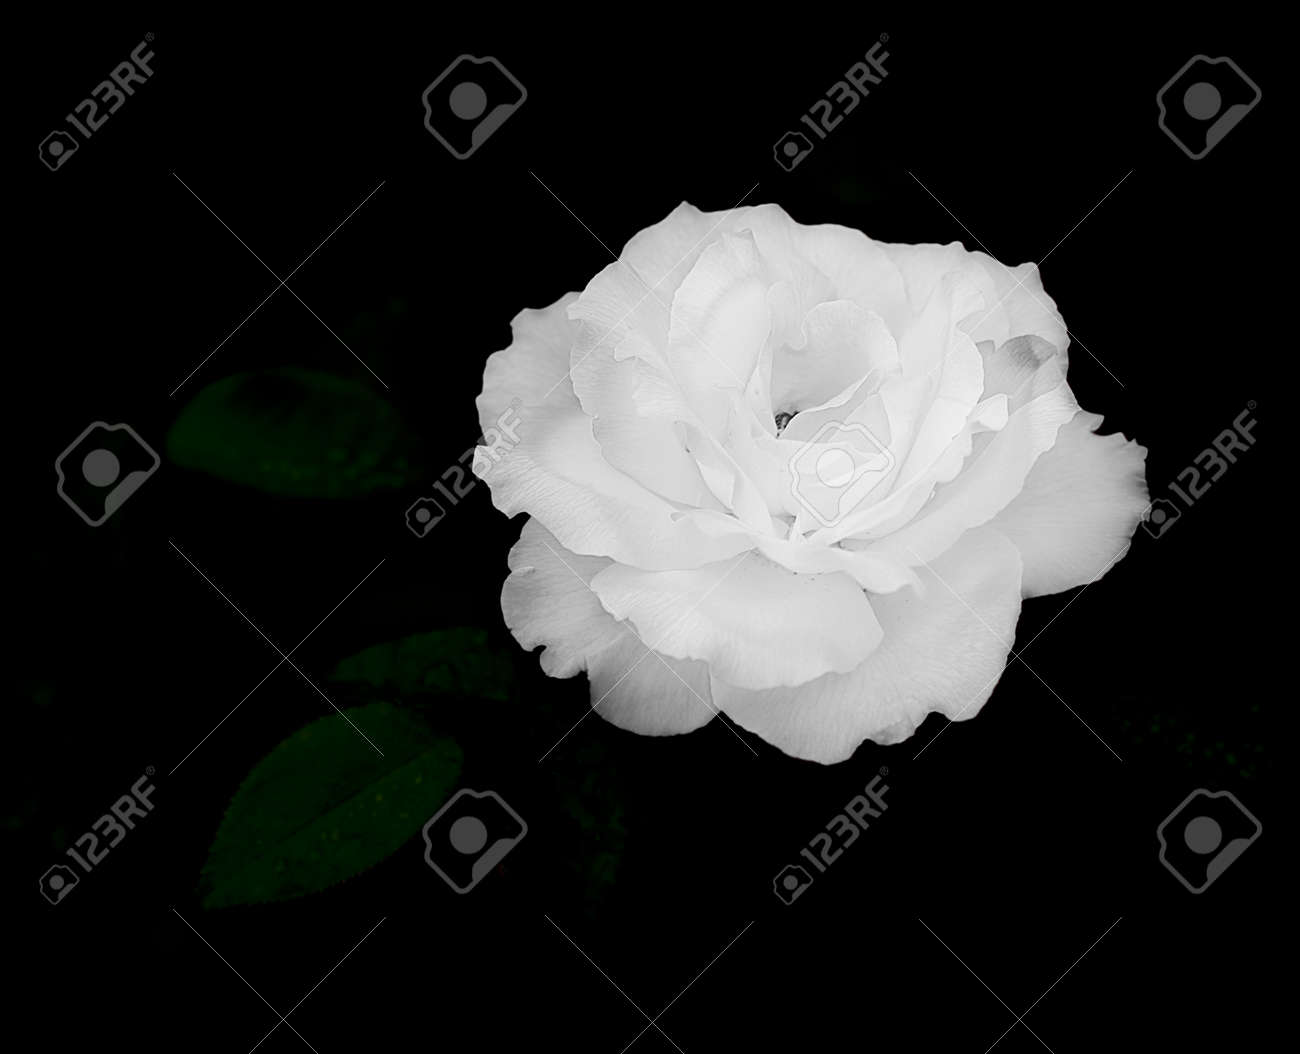 Close Up Of White Rose Flower On Dark Almost Black Background